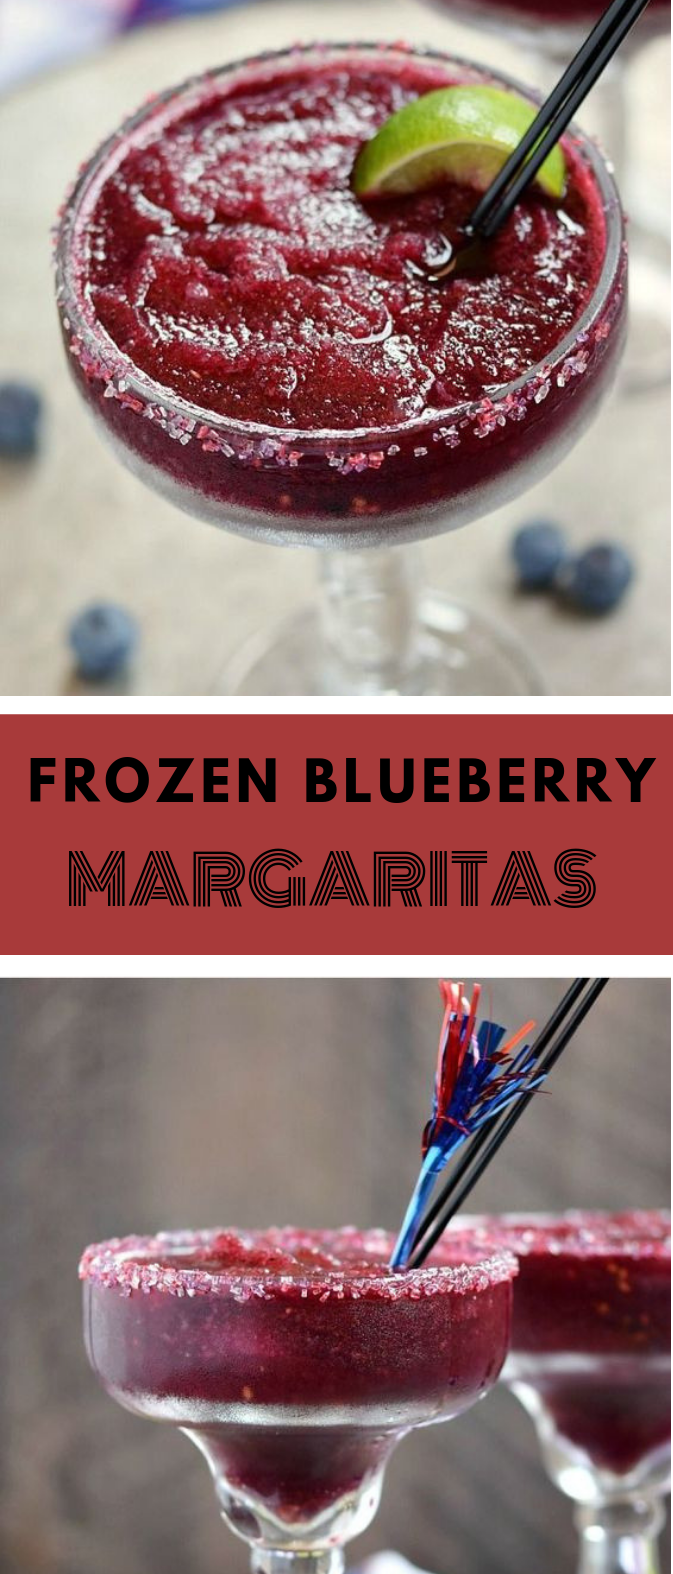 FROZEN BLUEBERRY MARGARITAS #delicious #blueberry